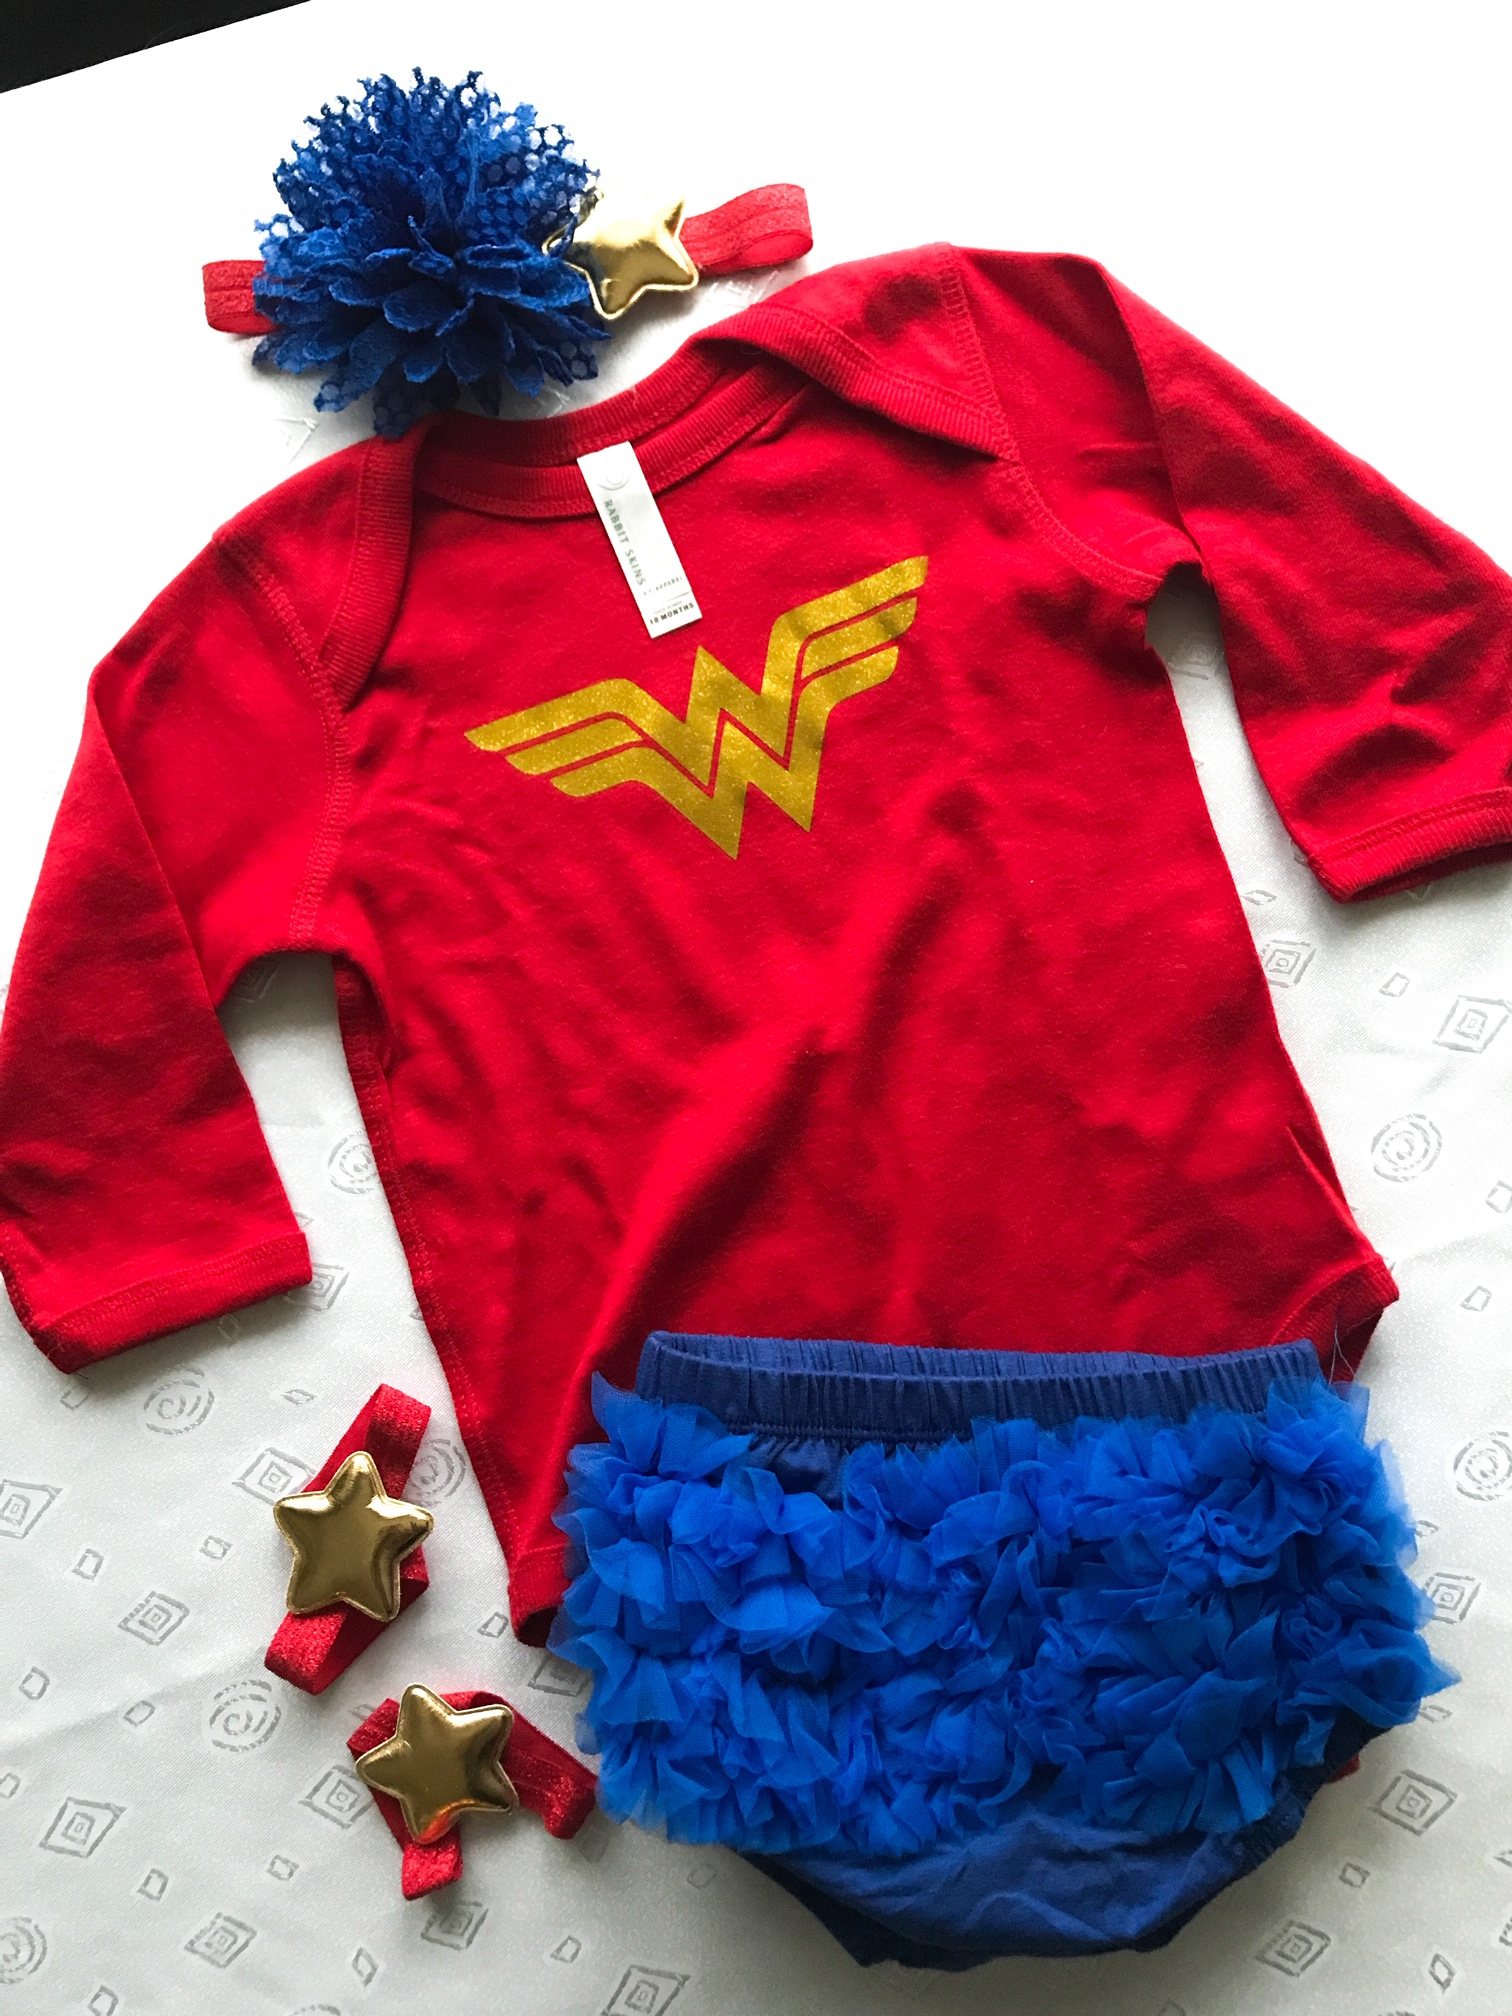 Wonder Woman Outfit For A Baby. Wonder Woman Onesie. Wonder Woman Superhero Birthday Party Theme Ideas. How to Plan a Wonder Woman Themed 1st Birthday Party. #sponsored #wonder#woman #birthday #party #decor